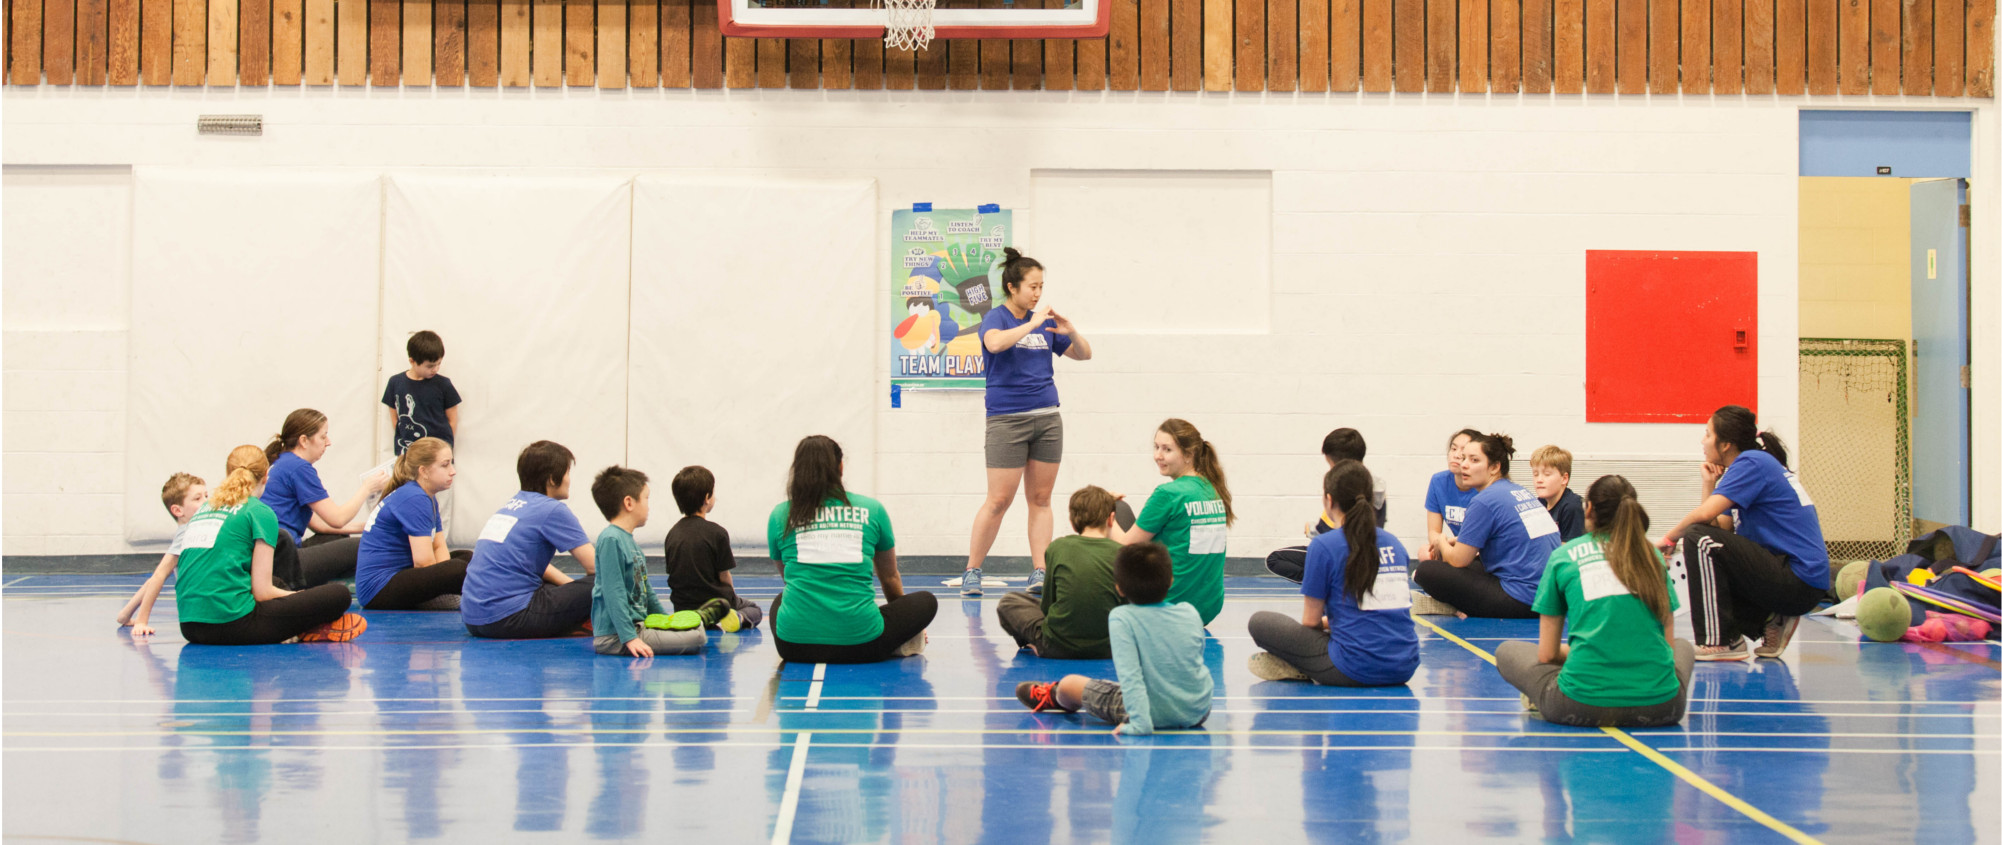 A coach stands in front of seated staff, volunteers and participants within a sports program.